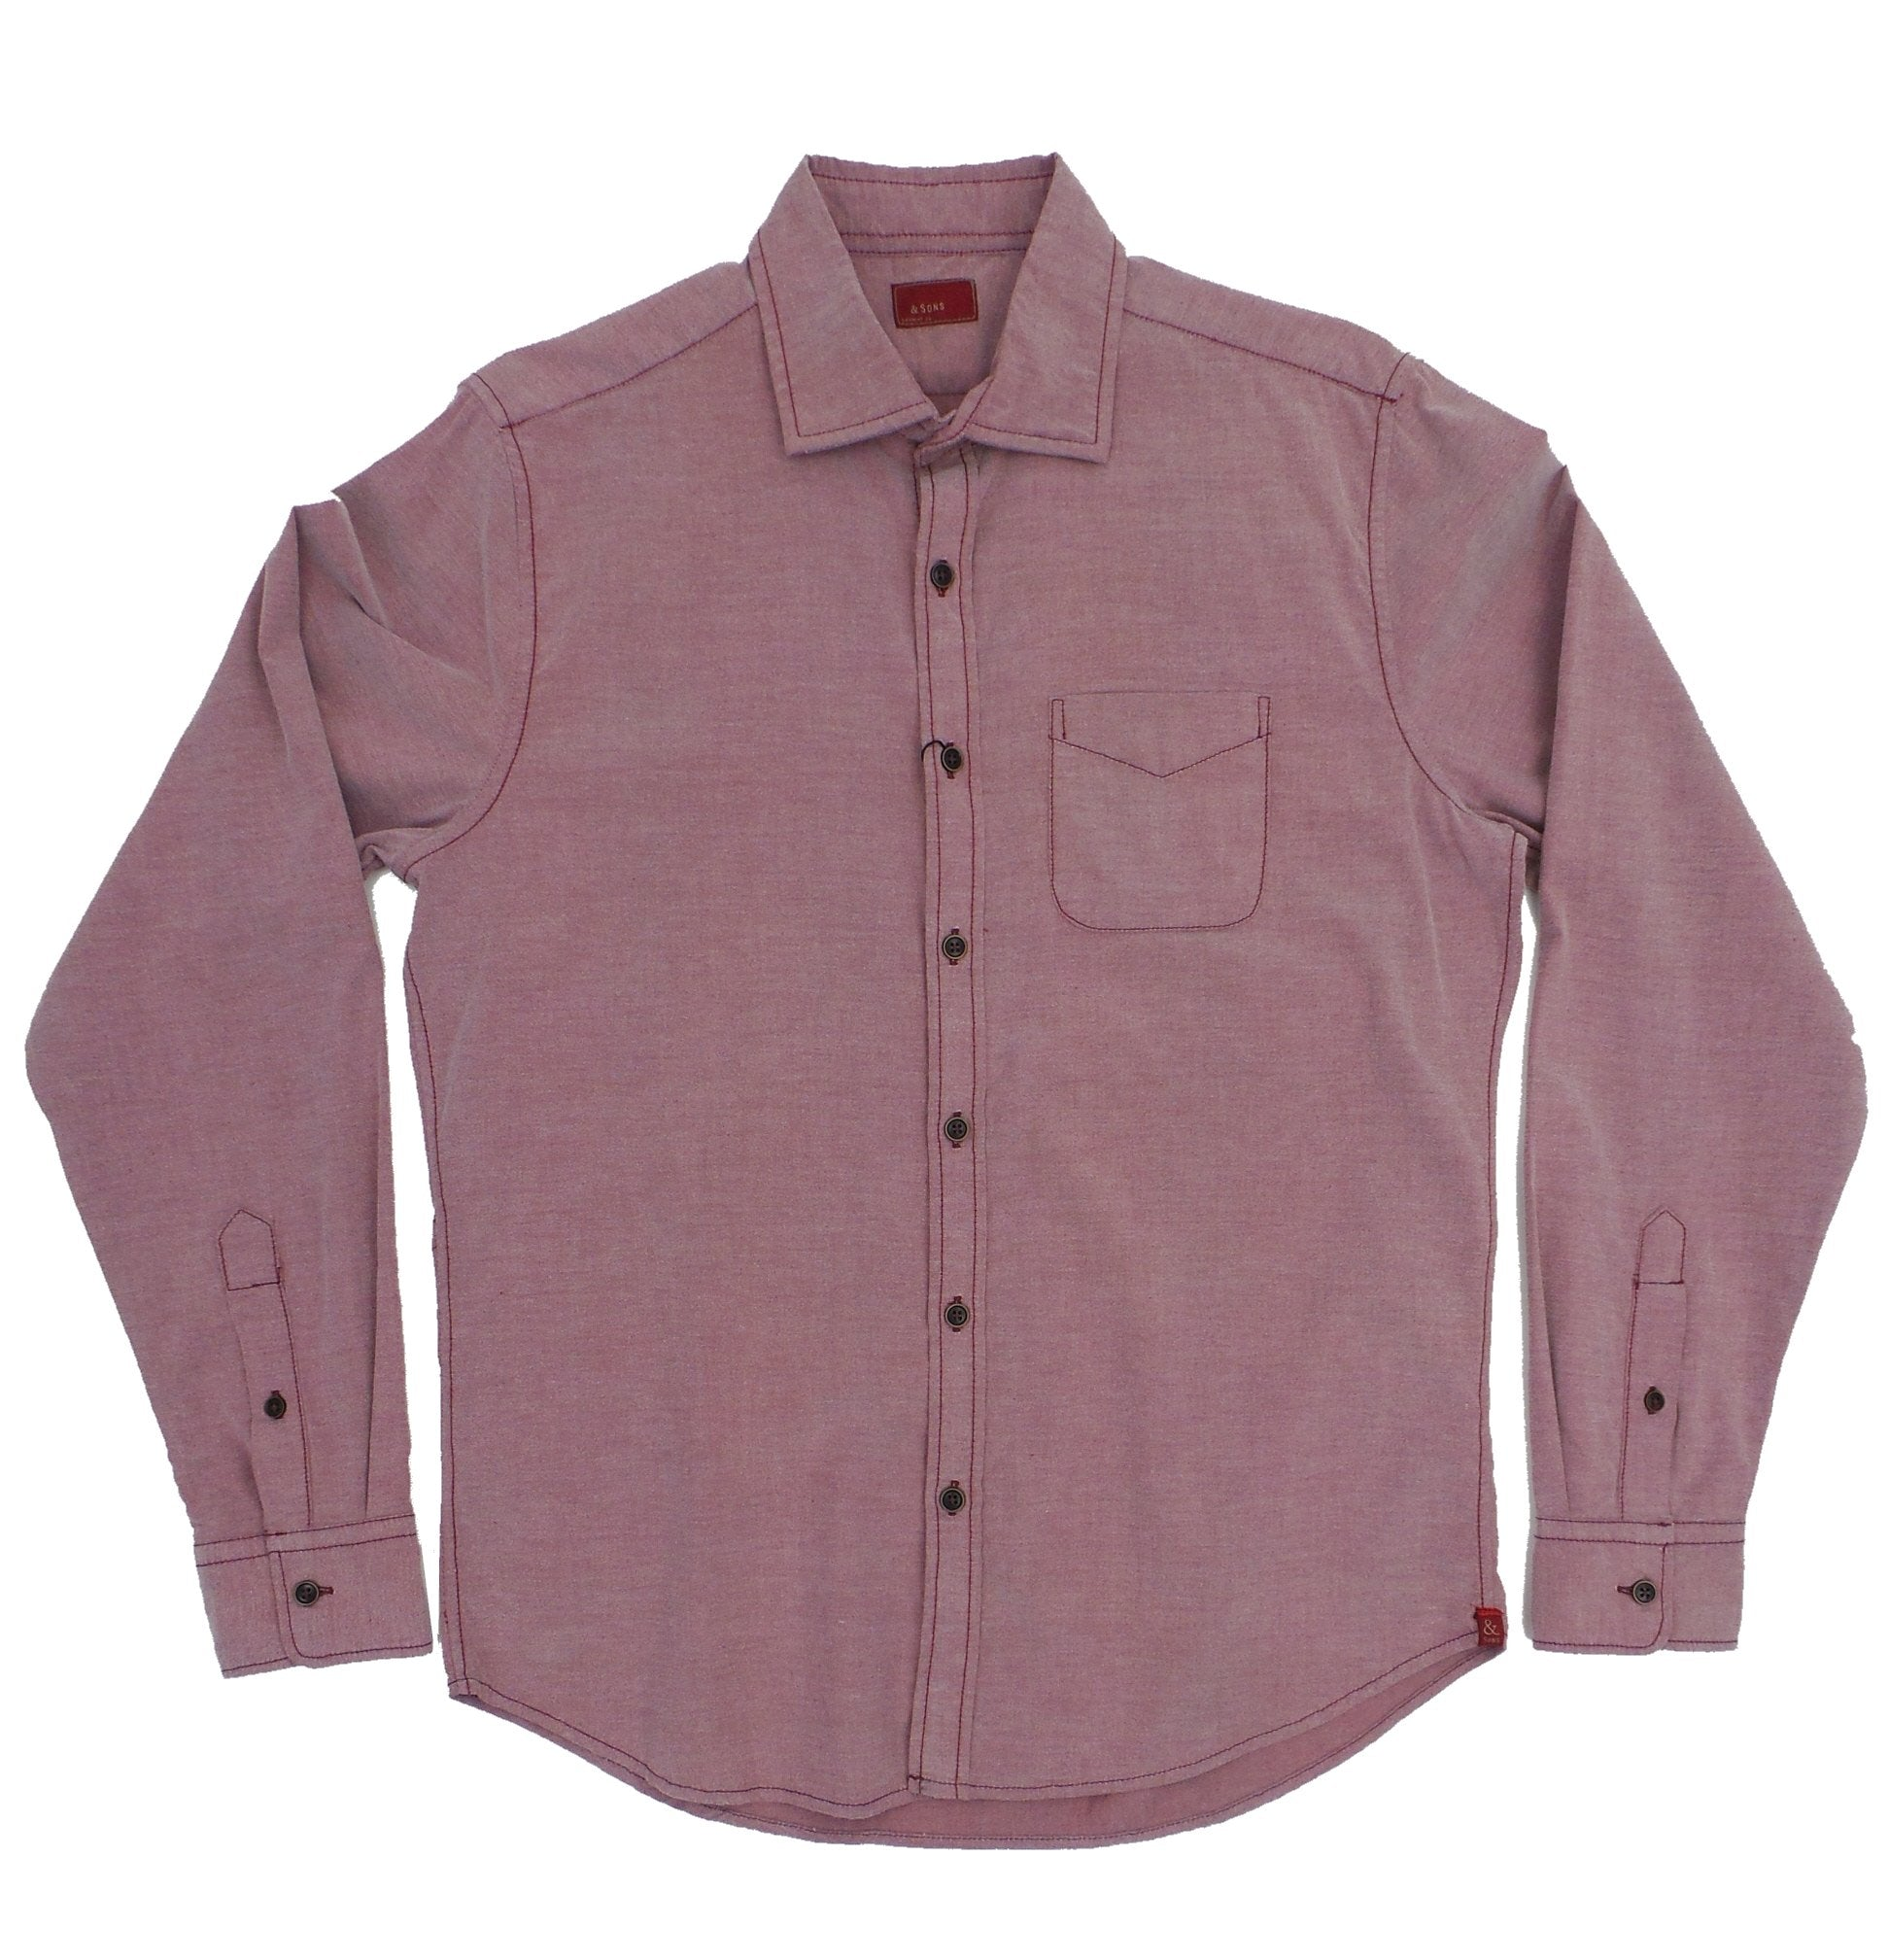 & Sons Garment Co. Pinpoint Oxford Button Down Woven Shirt